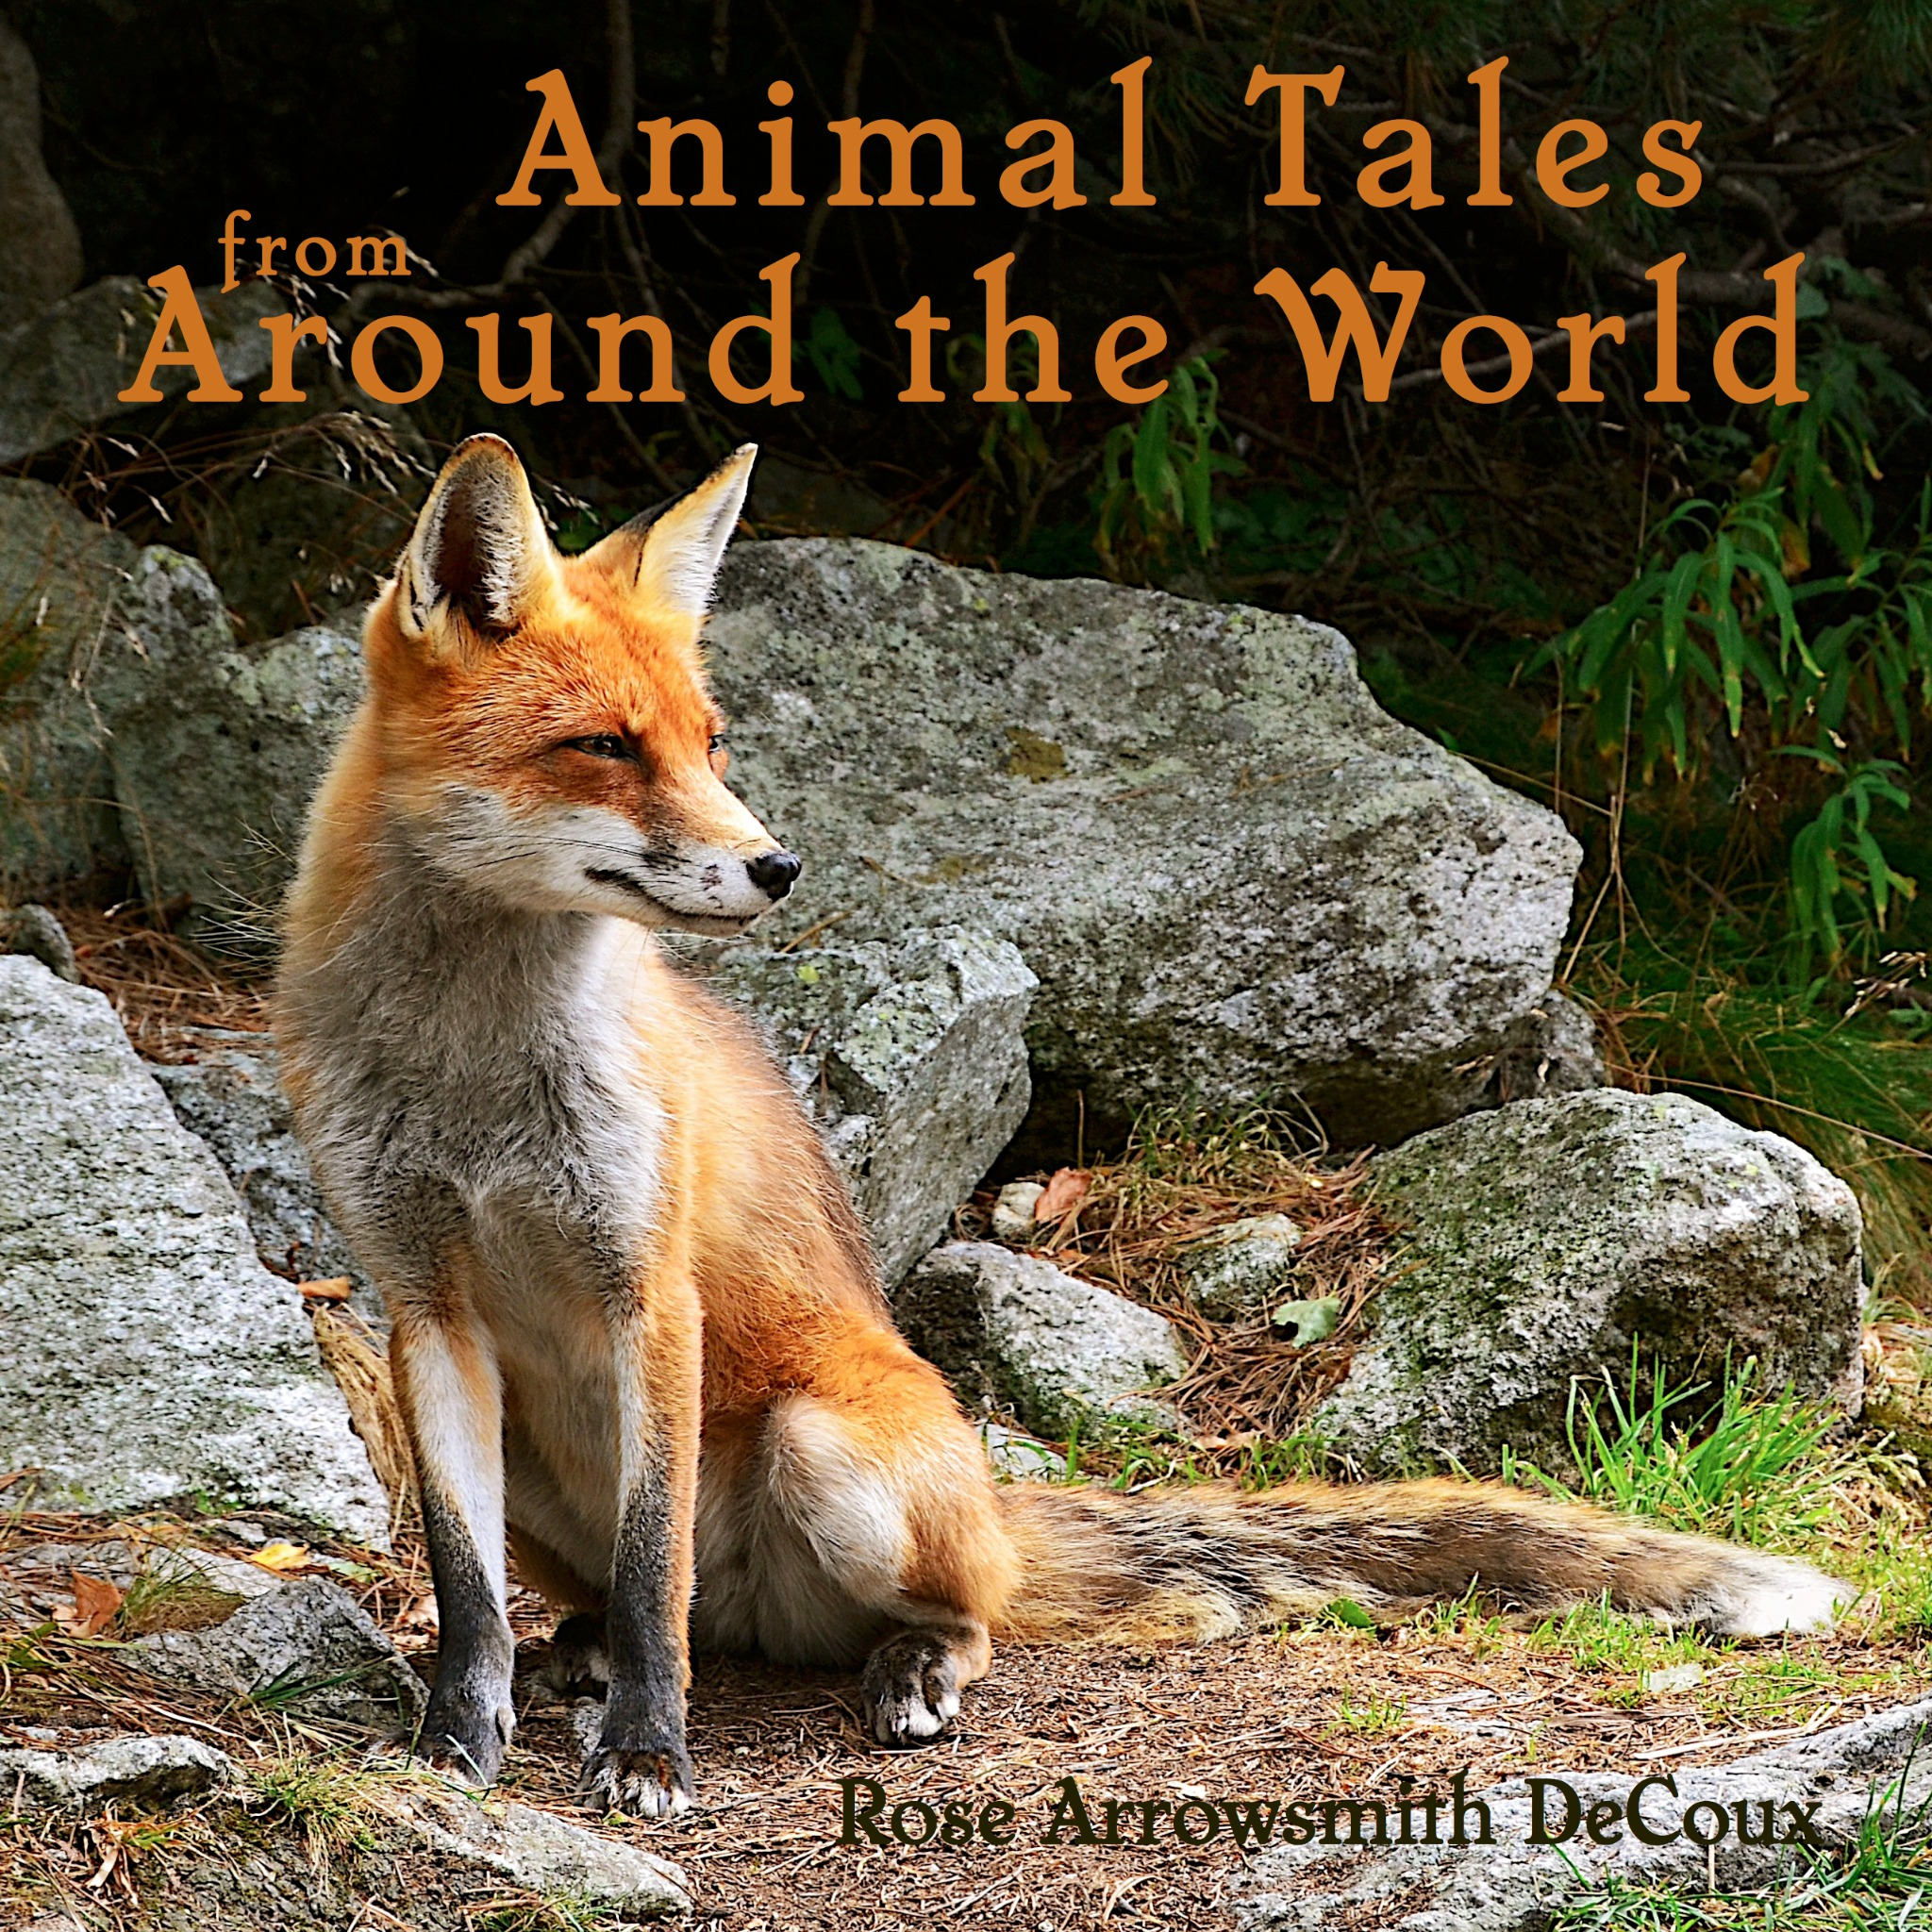 Animal Tales From Around the World [audio]